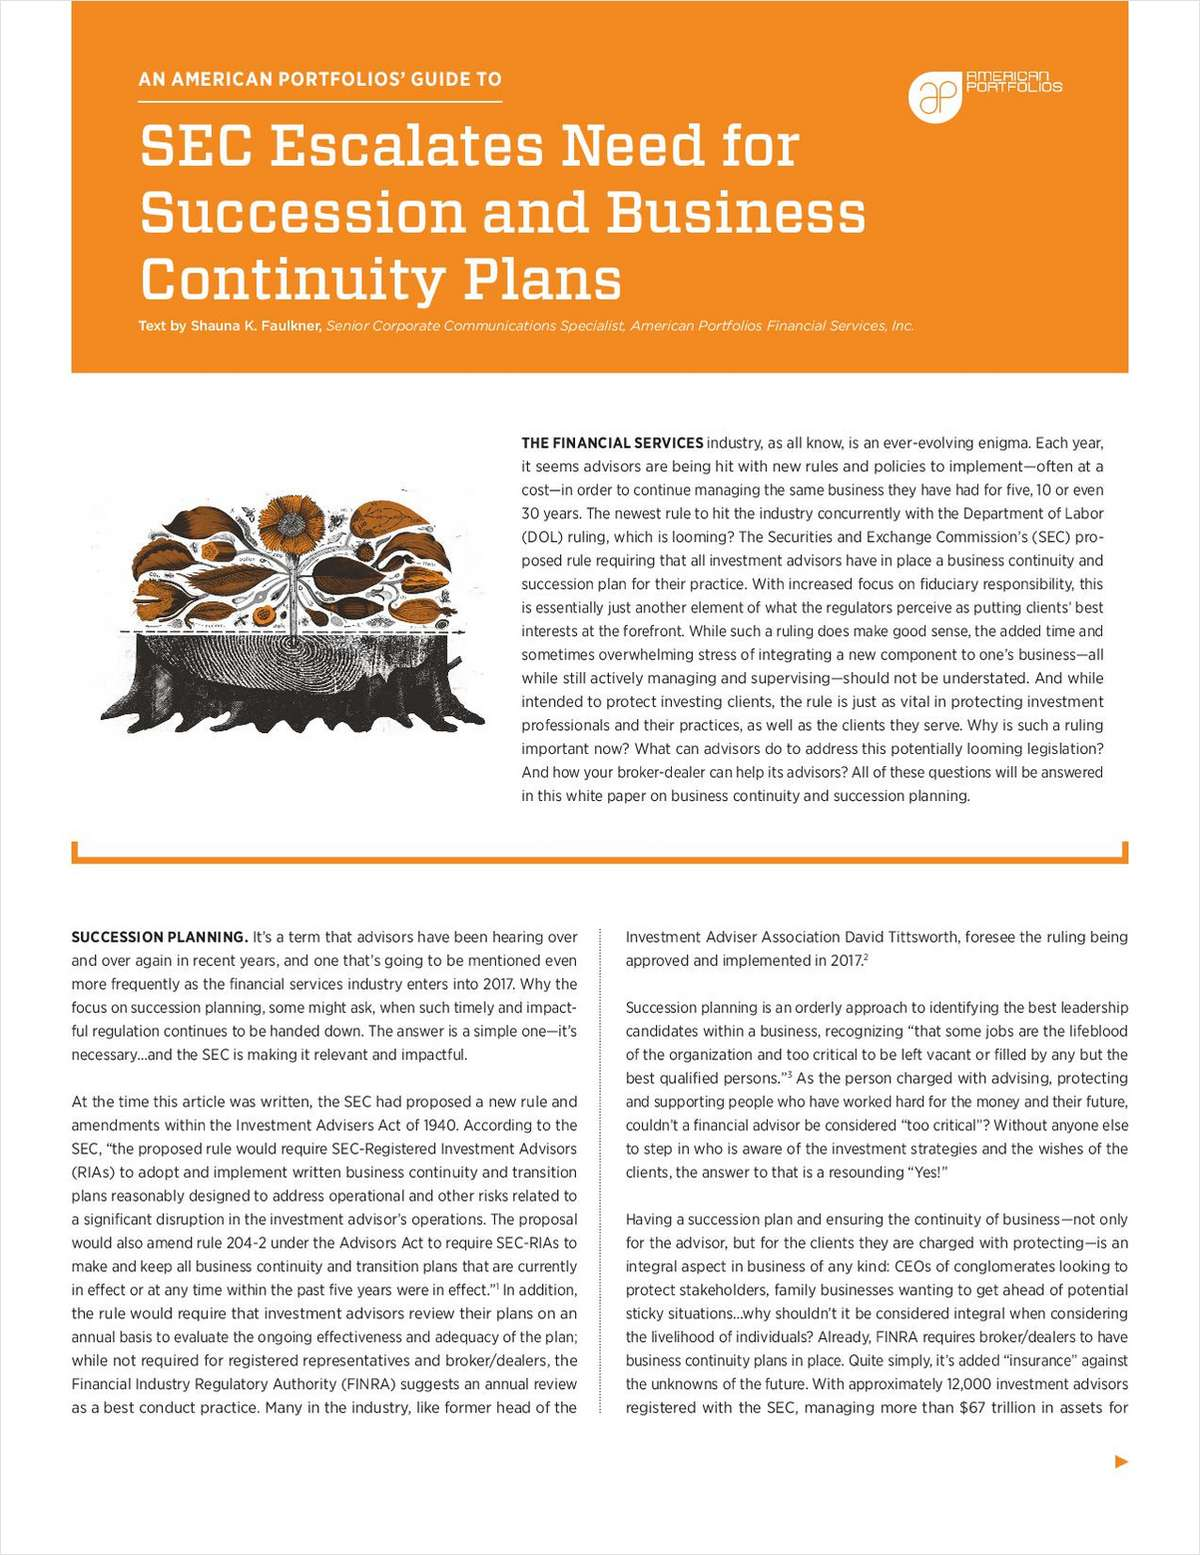 SEC Escalates Need for Succession and Business Continuity Plans